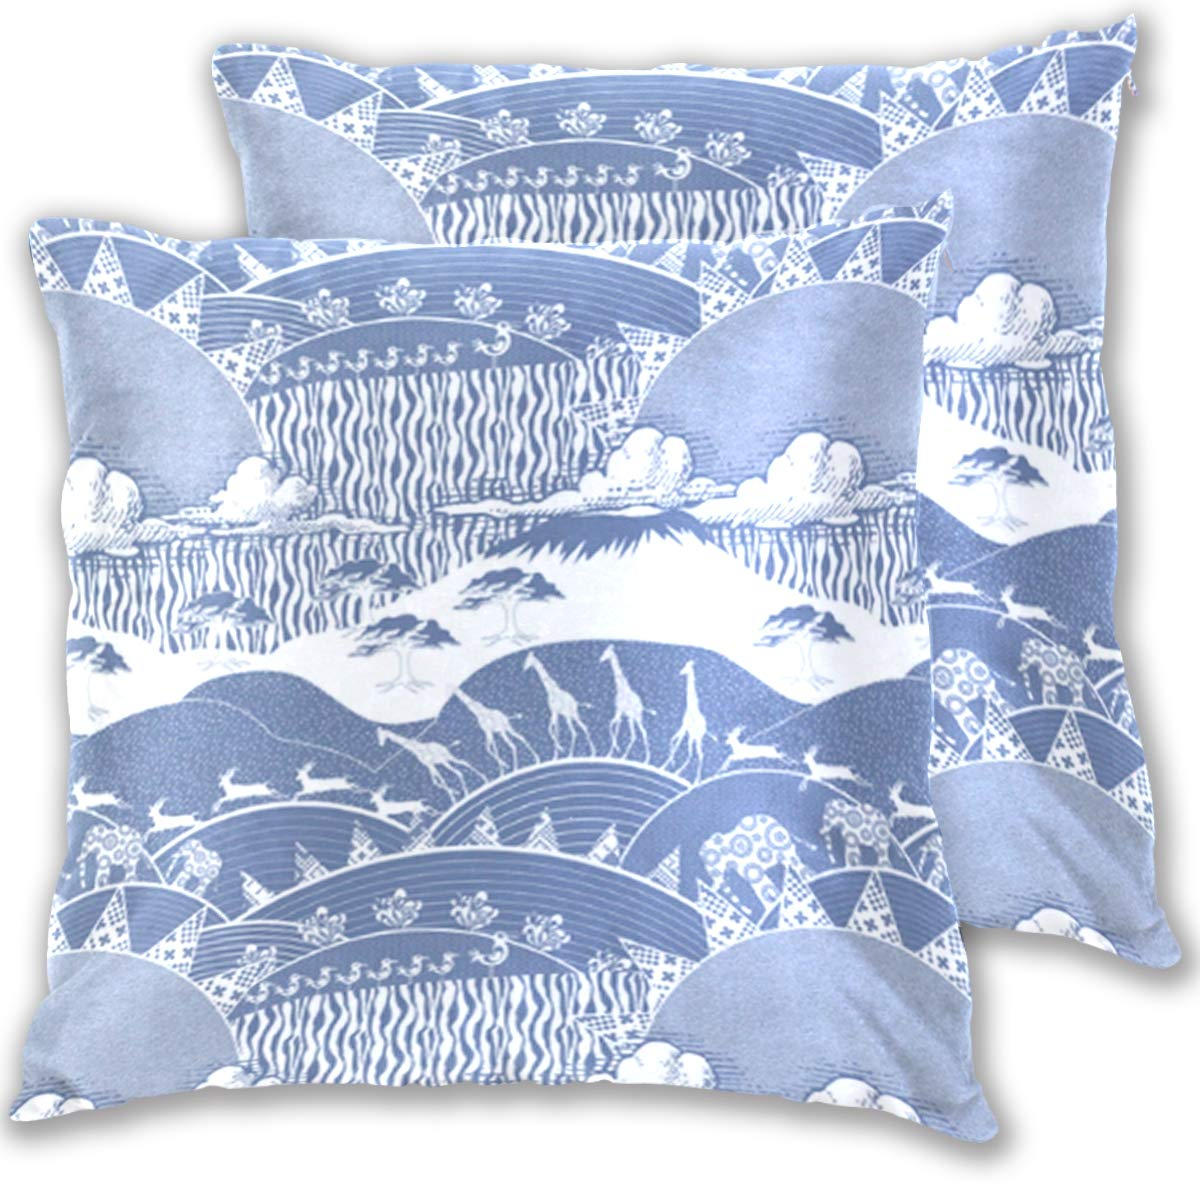 BeliveFinds Africa Monaco Blue Culture Throw Pillow Covers Bed Sofa Cotton Square Pillowcase,Set of 2